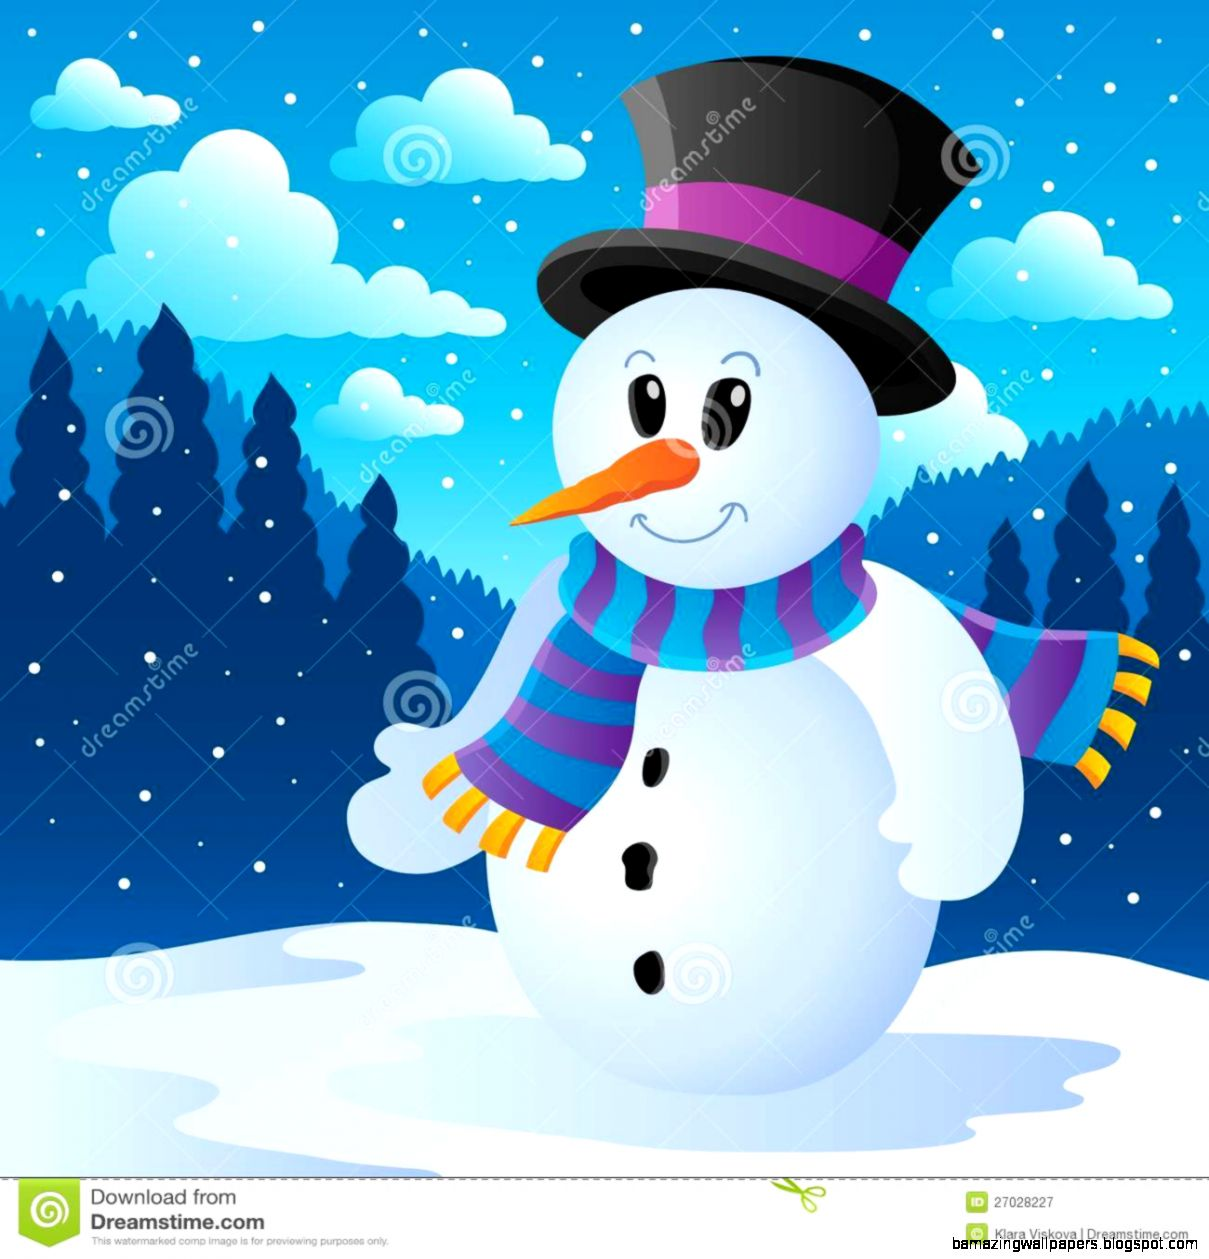 Winter Snowman Theme Image 1 Royalty Free Stock Photography